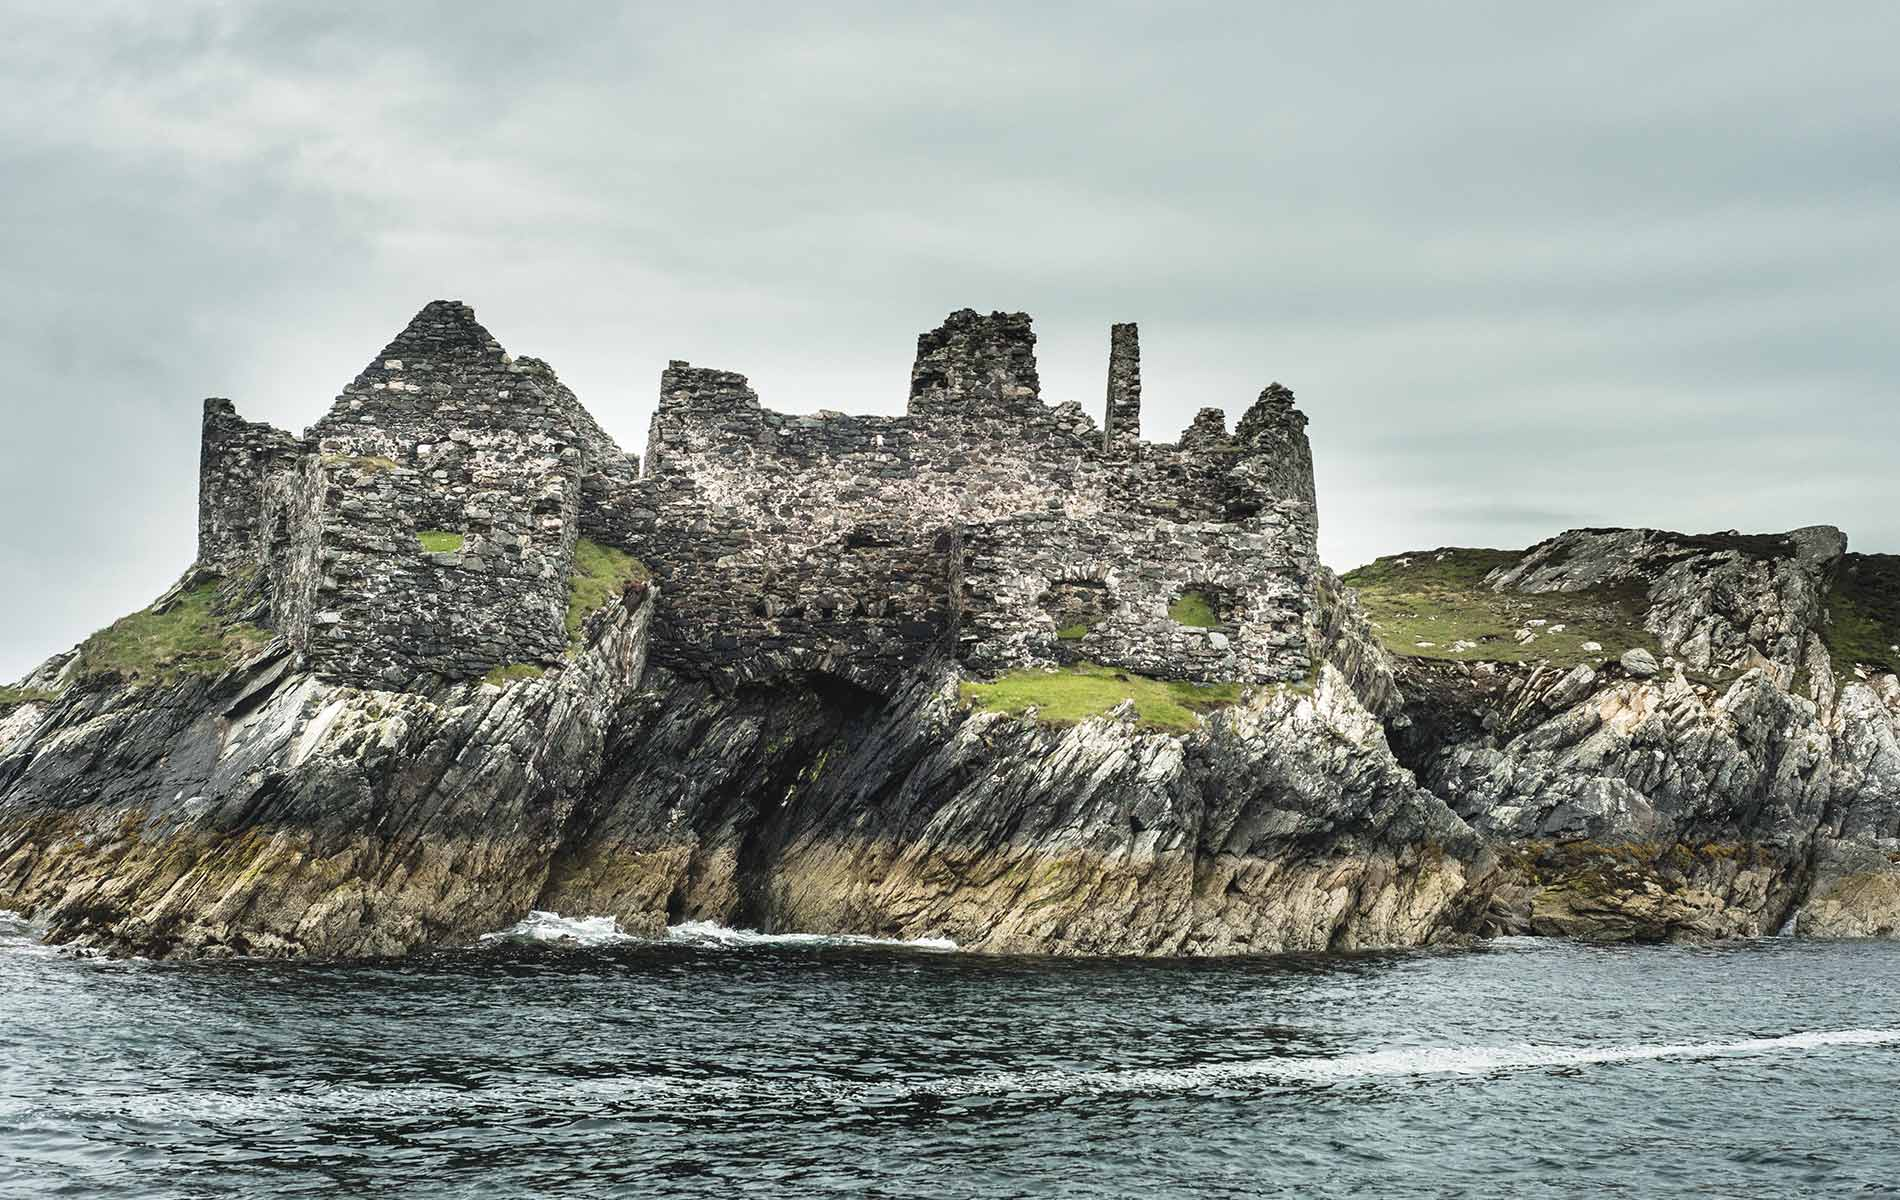 Abandoned castle ruins on Inishbofin island in Ireland